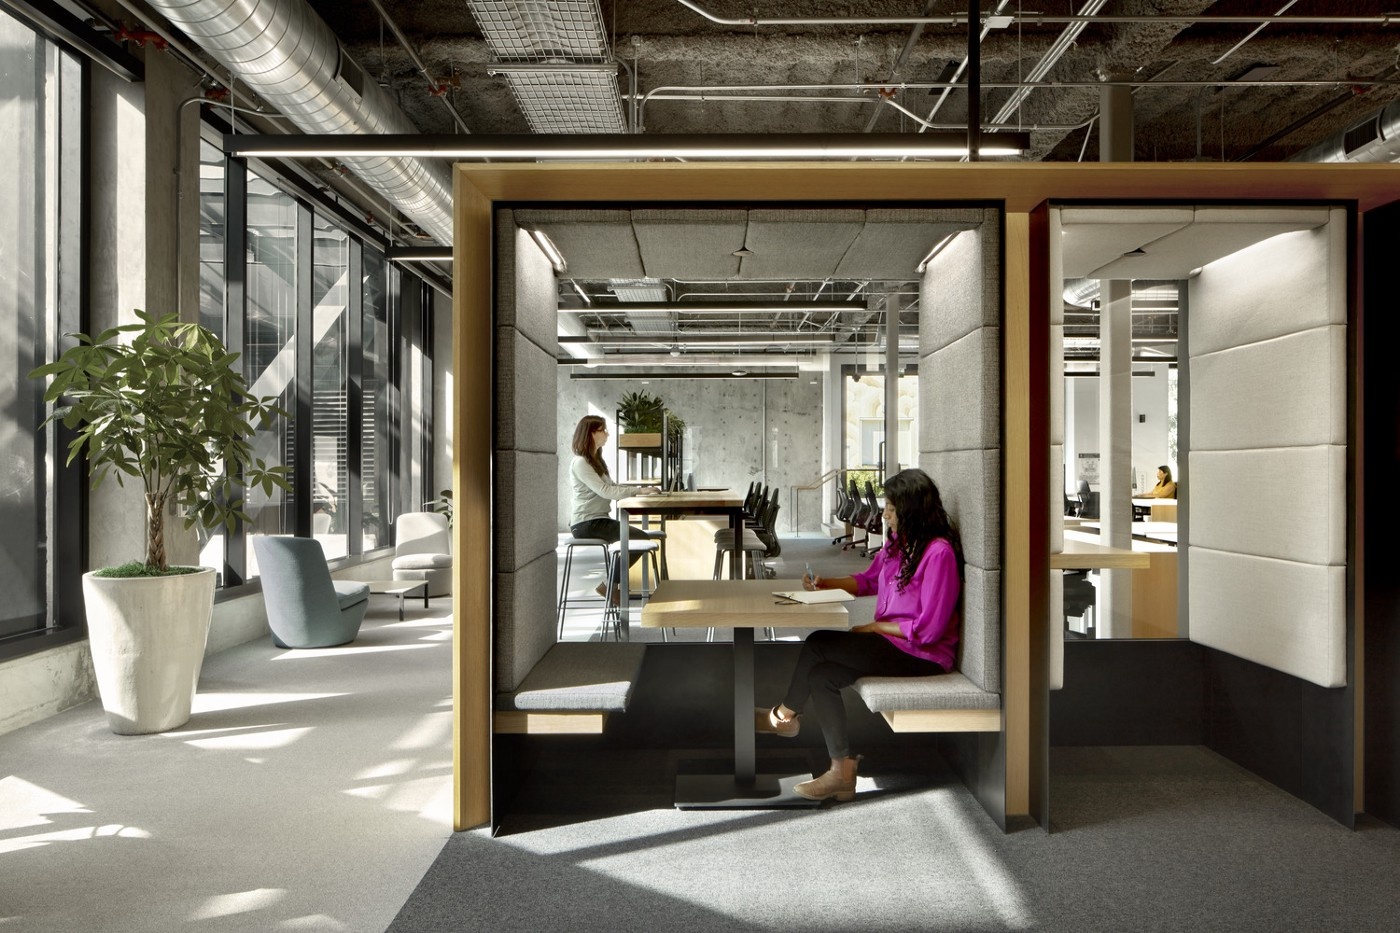 Semi-private spaces are interspersed within work areas.